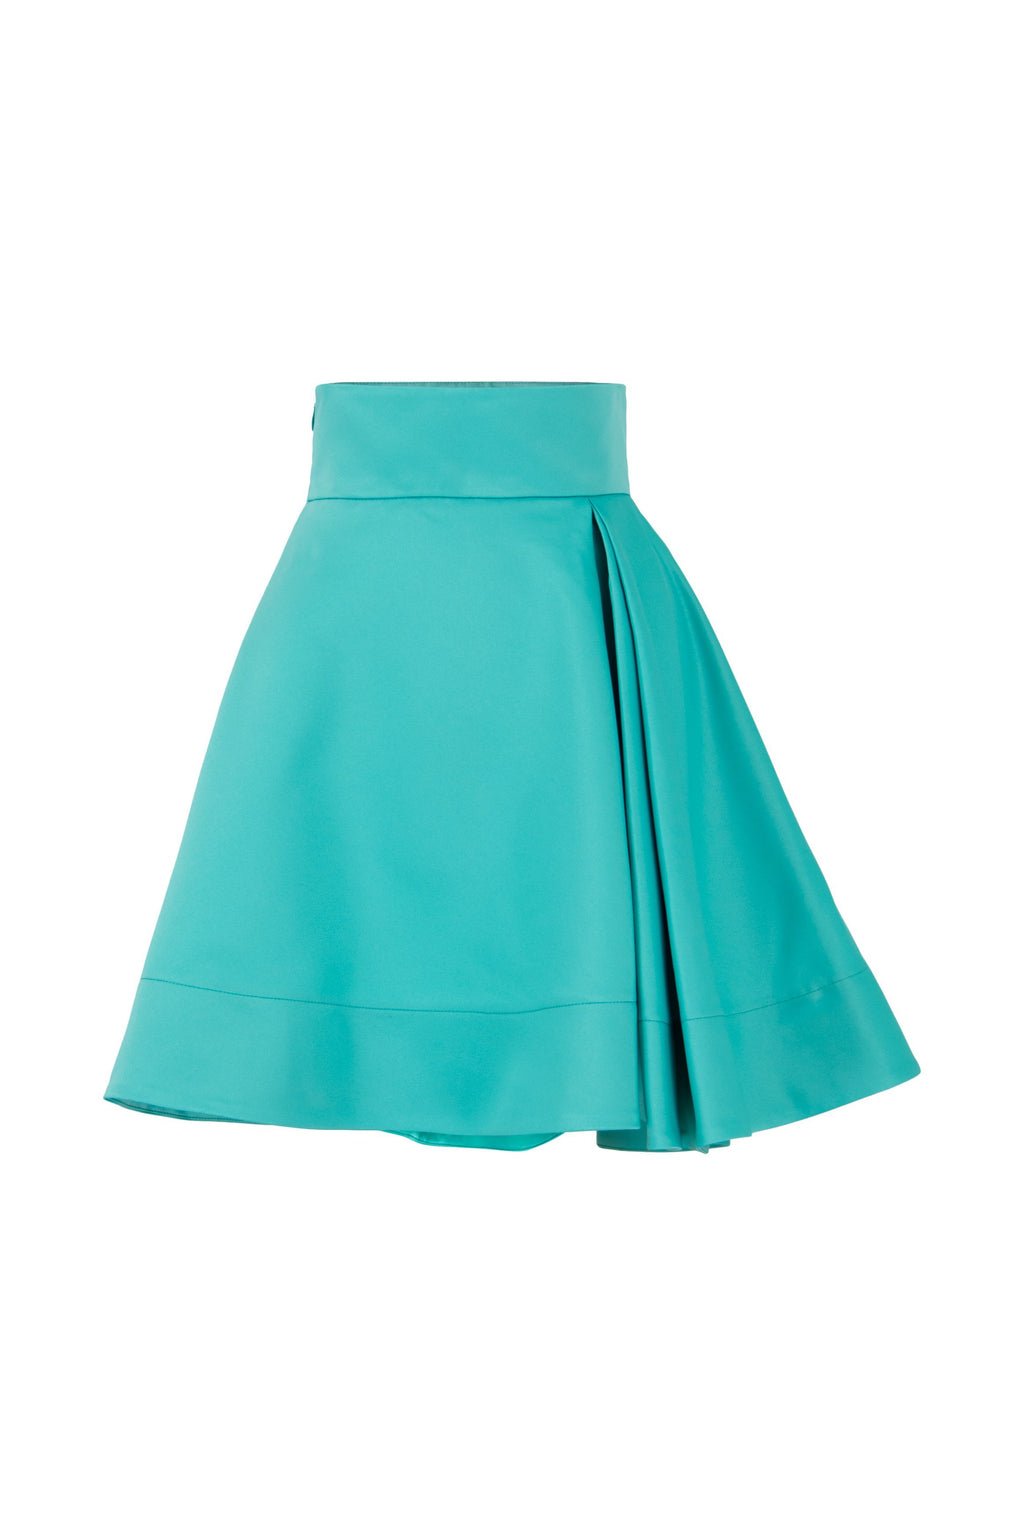 Ray of Sunshine Half-Pleated A-line Mini Skirt - Tia Dorraine London